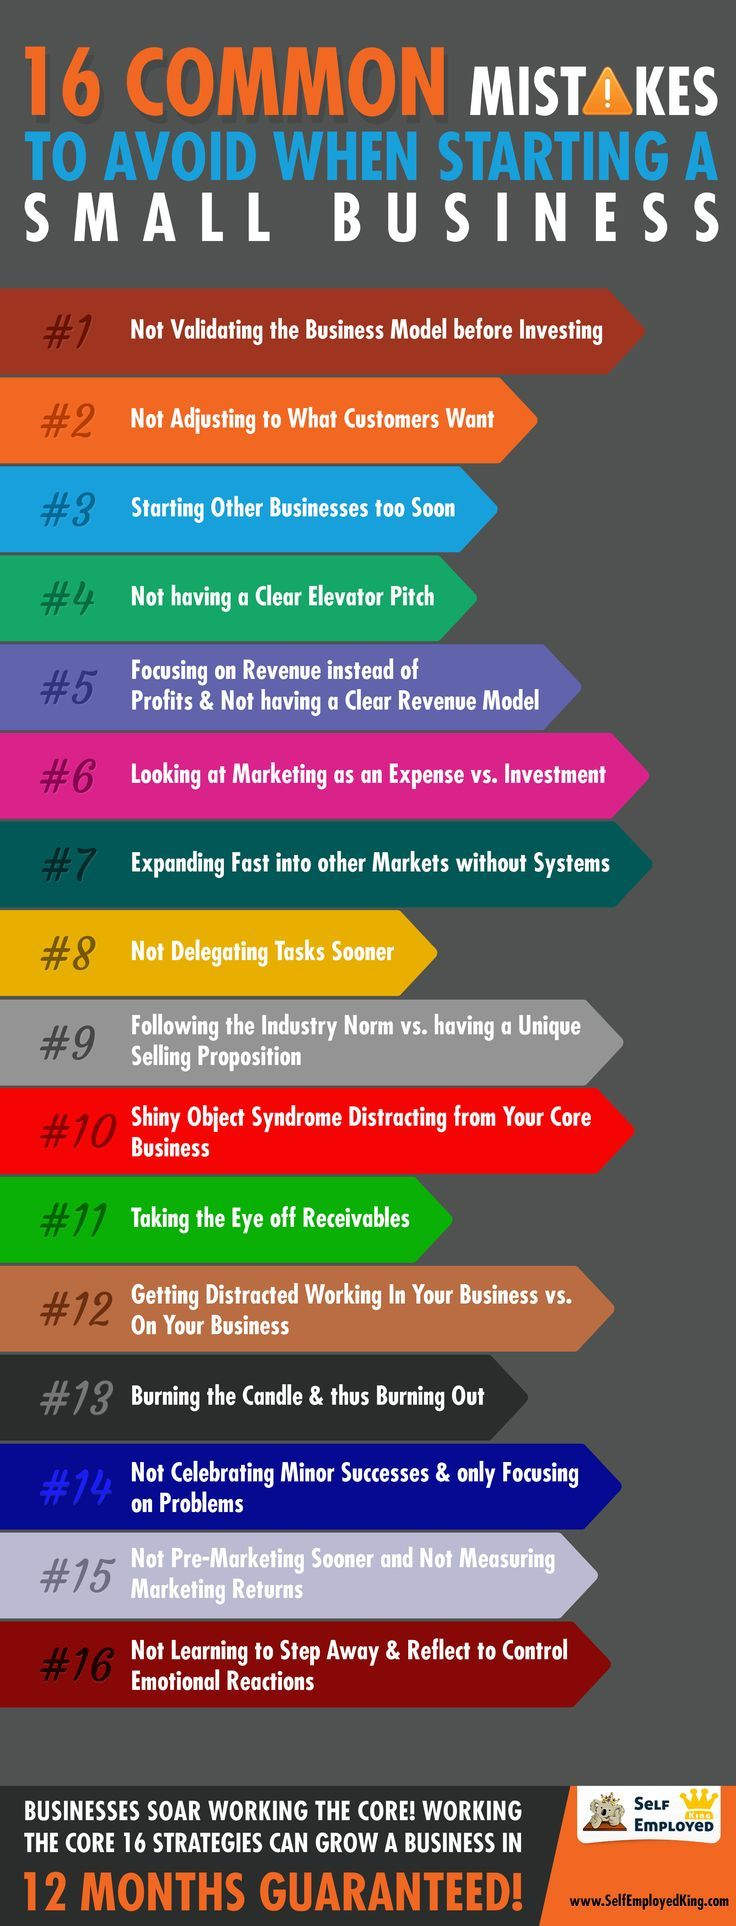 Can entrepreneurs really make a business plan if they have lots of different ideas